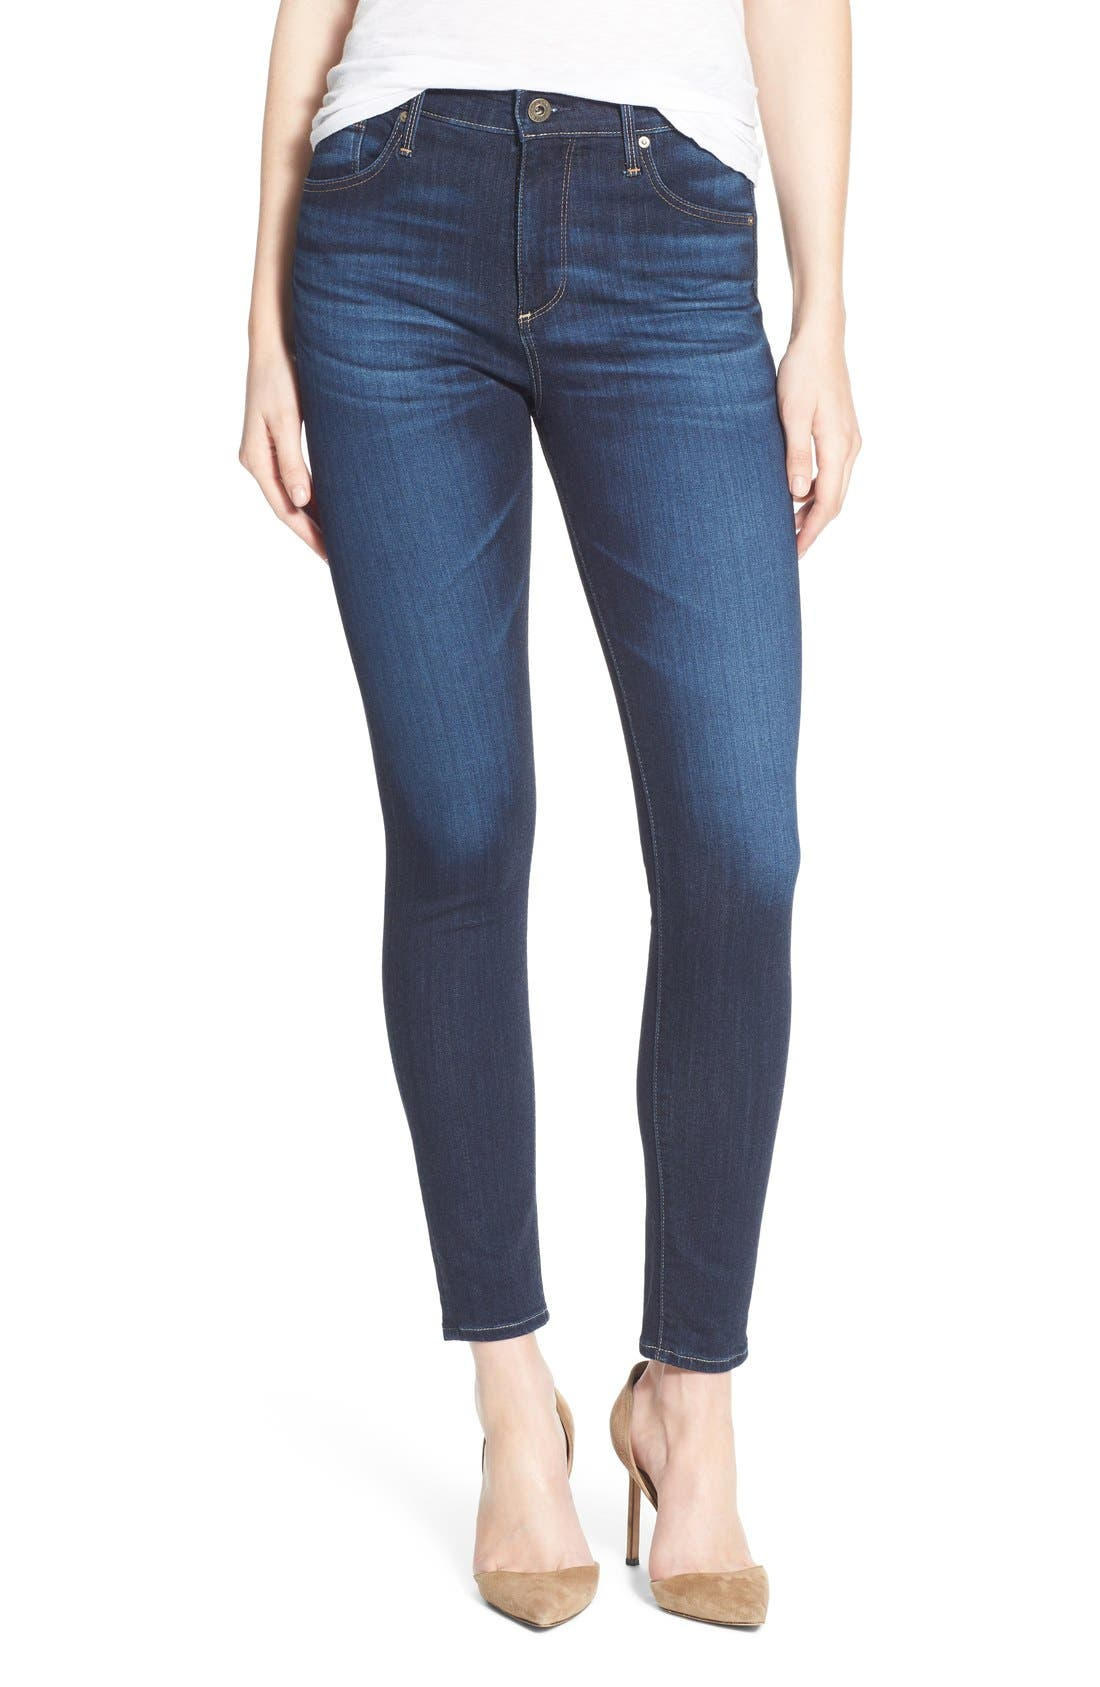 Alternate Image 1 Selected - AG 'The Farrah' High Rise Crop Skinny Jeans